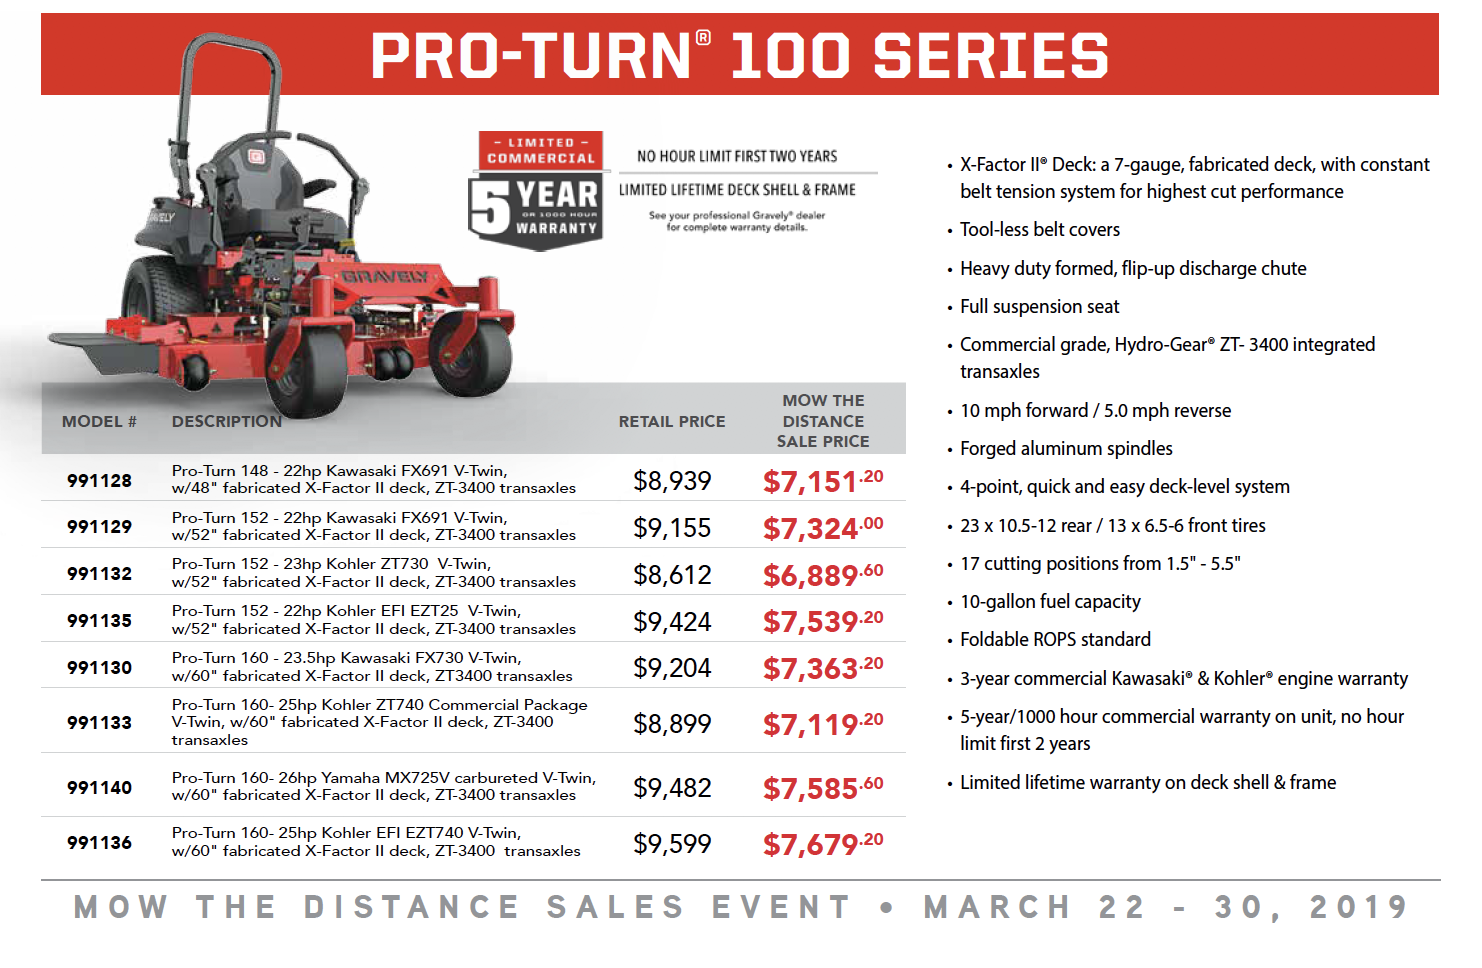 Mow the Distance Gravely Days March 22 -30, 2019 ProTurn 100